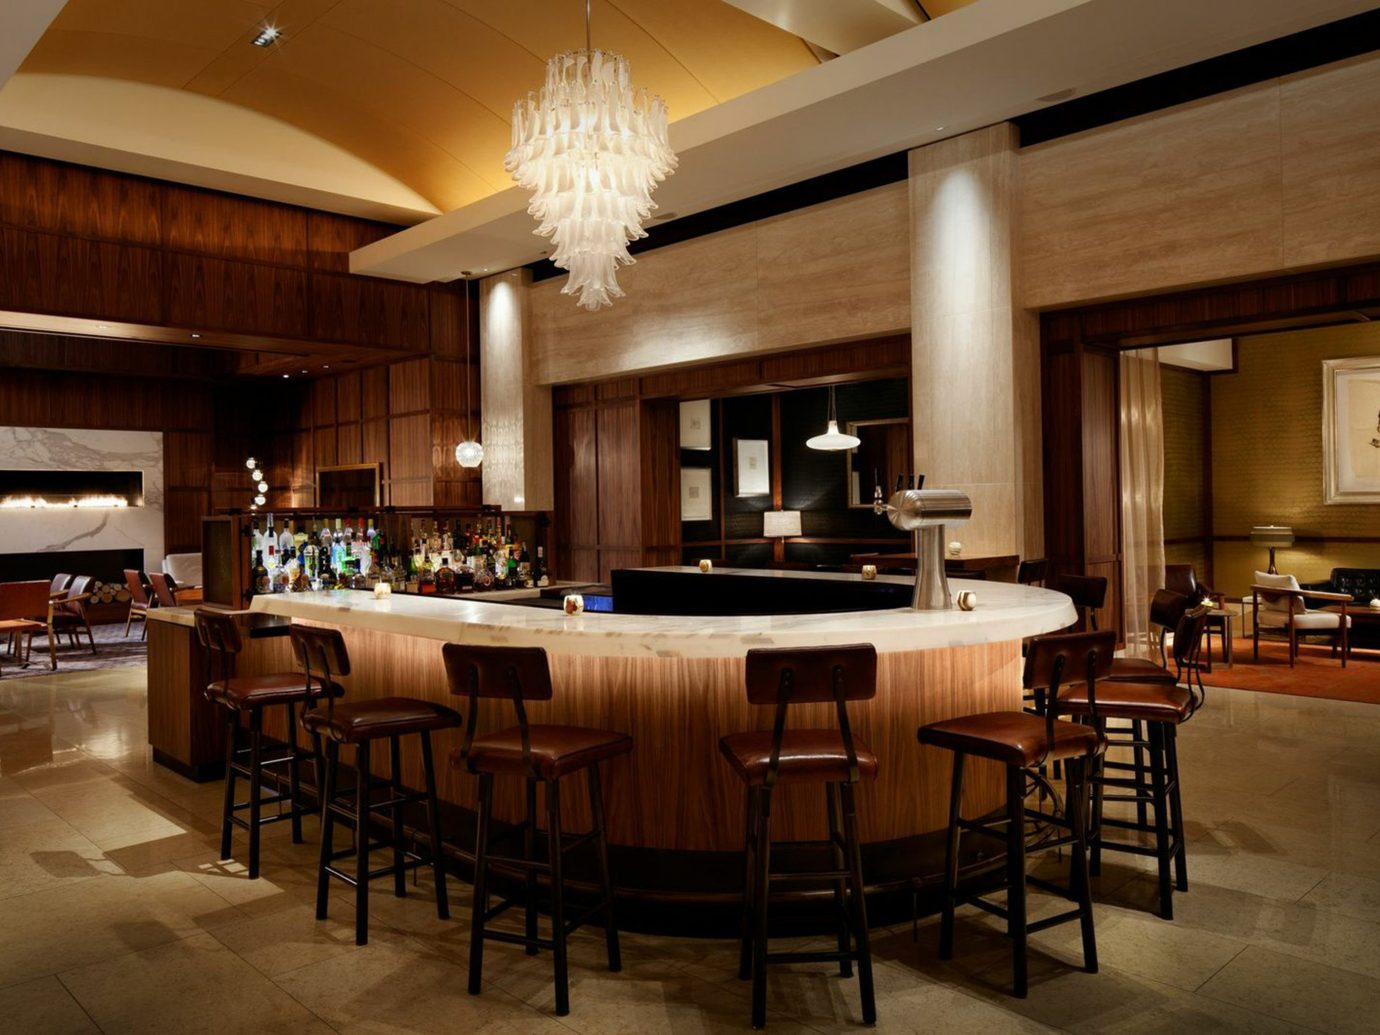 Bar Boston Dining Drink Eat Lounge Luxury Modern Trip Ideas Weekend Getaways floor indoor ceiling room Lobby billiard room recreation room restaurant estate function hall interior design meal home Design conference hall dining room café ballroom convention center furniture